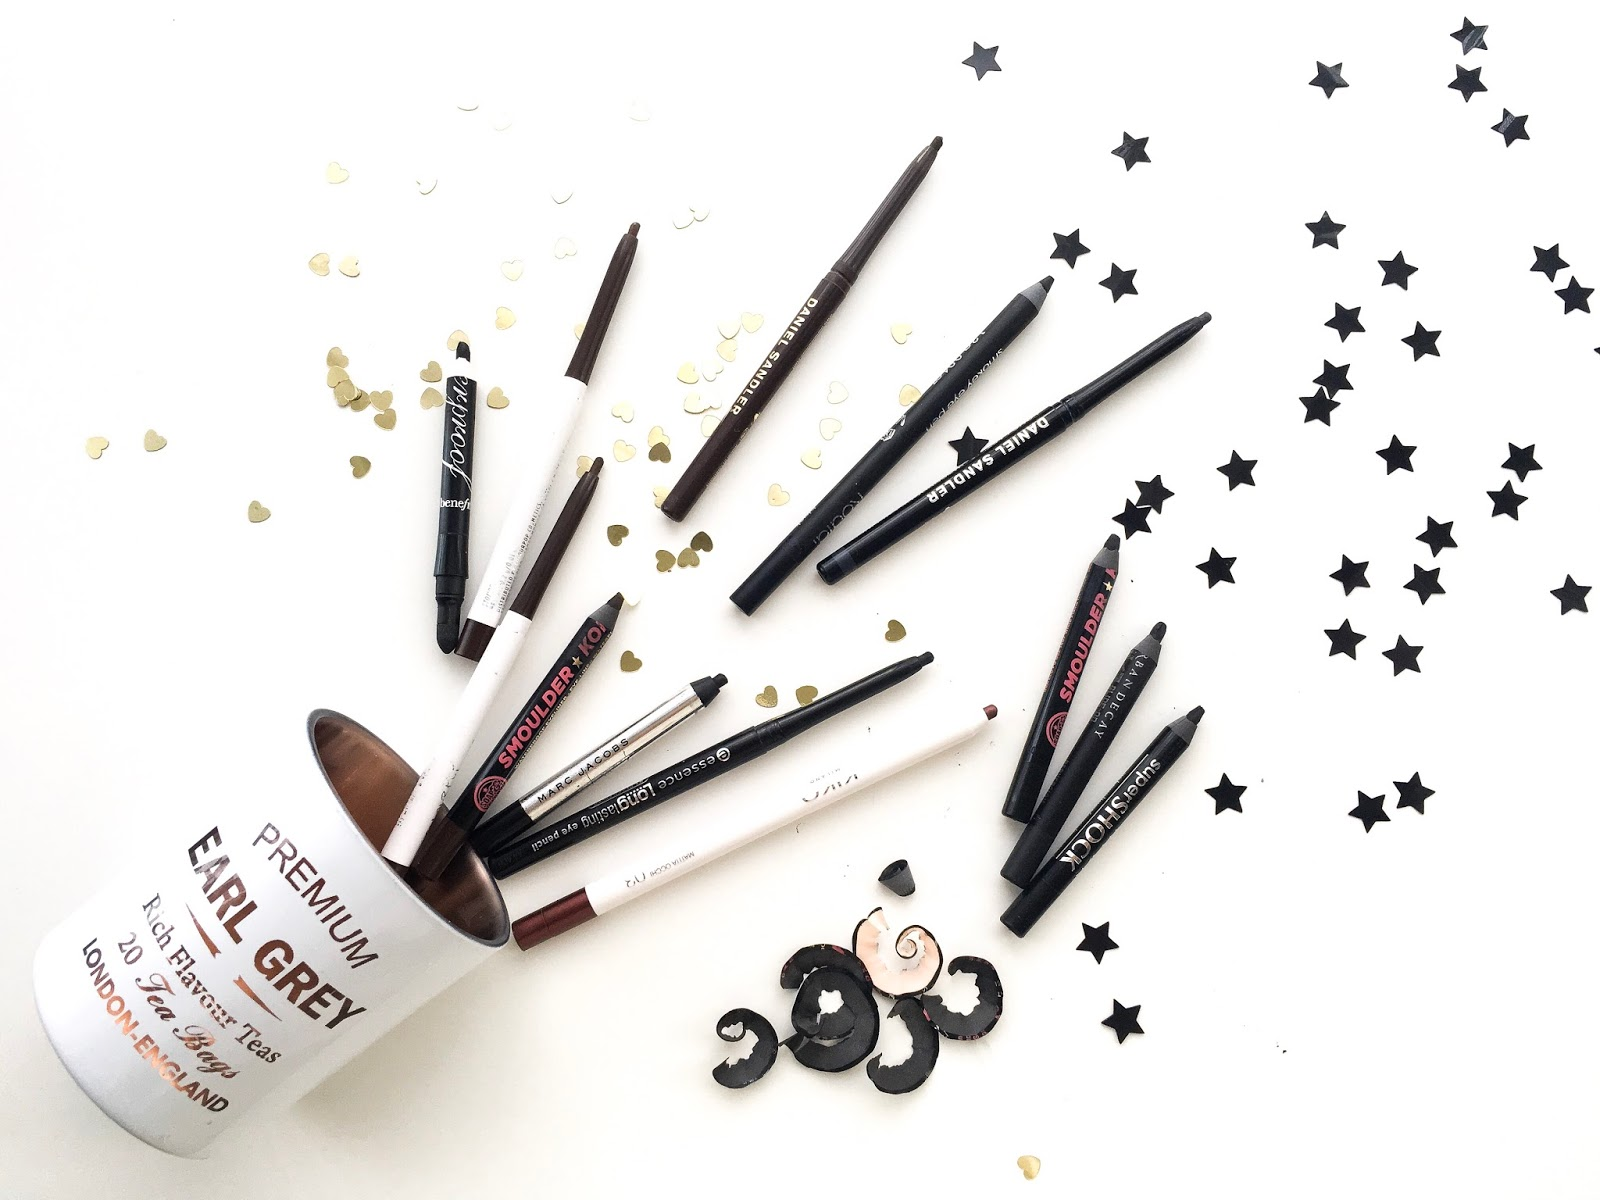 eye liner pencil review, best eyeliners, top eye pencils, eyeliner collection